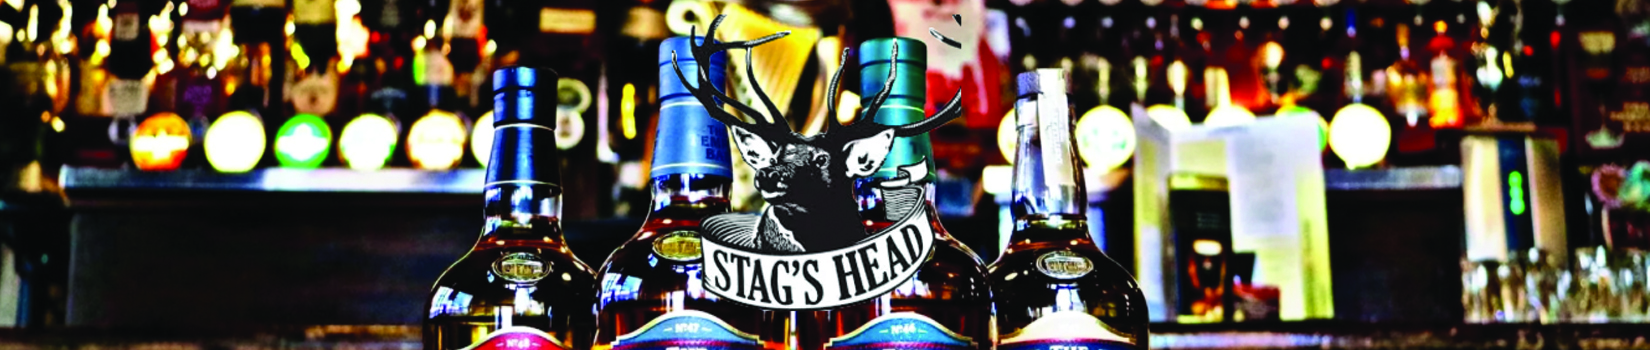 The Stags Head Bar & Grill